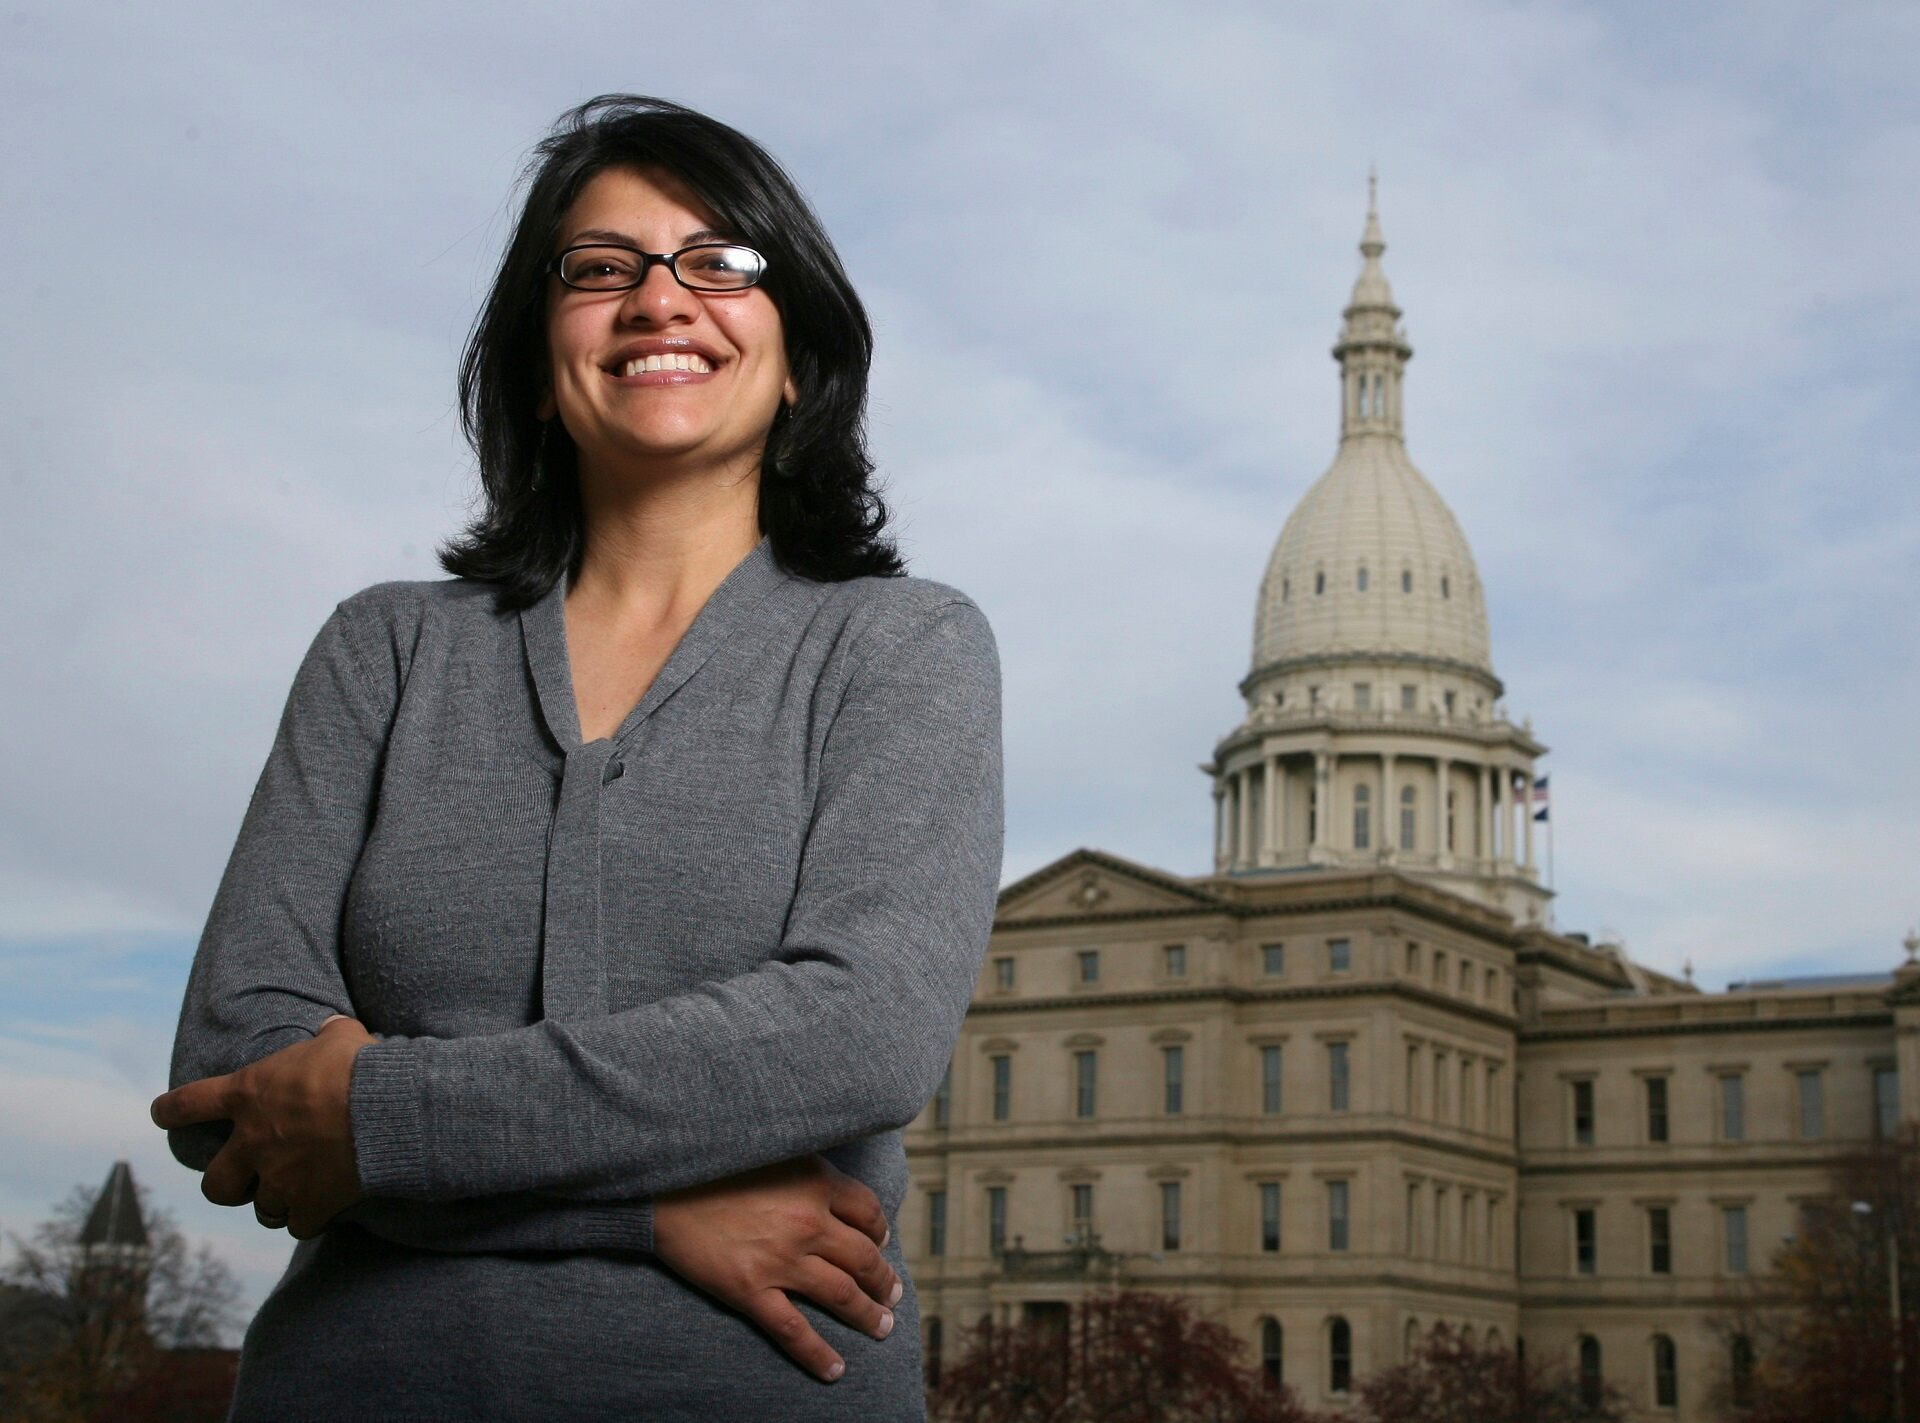 Rashida Tlaib hits critics over Holocaust remarks, says friend told her to speak to 'racist idiots' at fourth-grade level